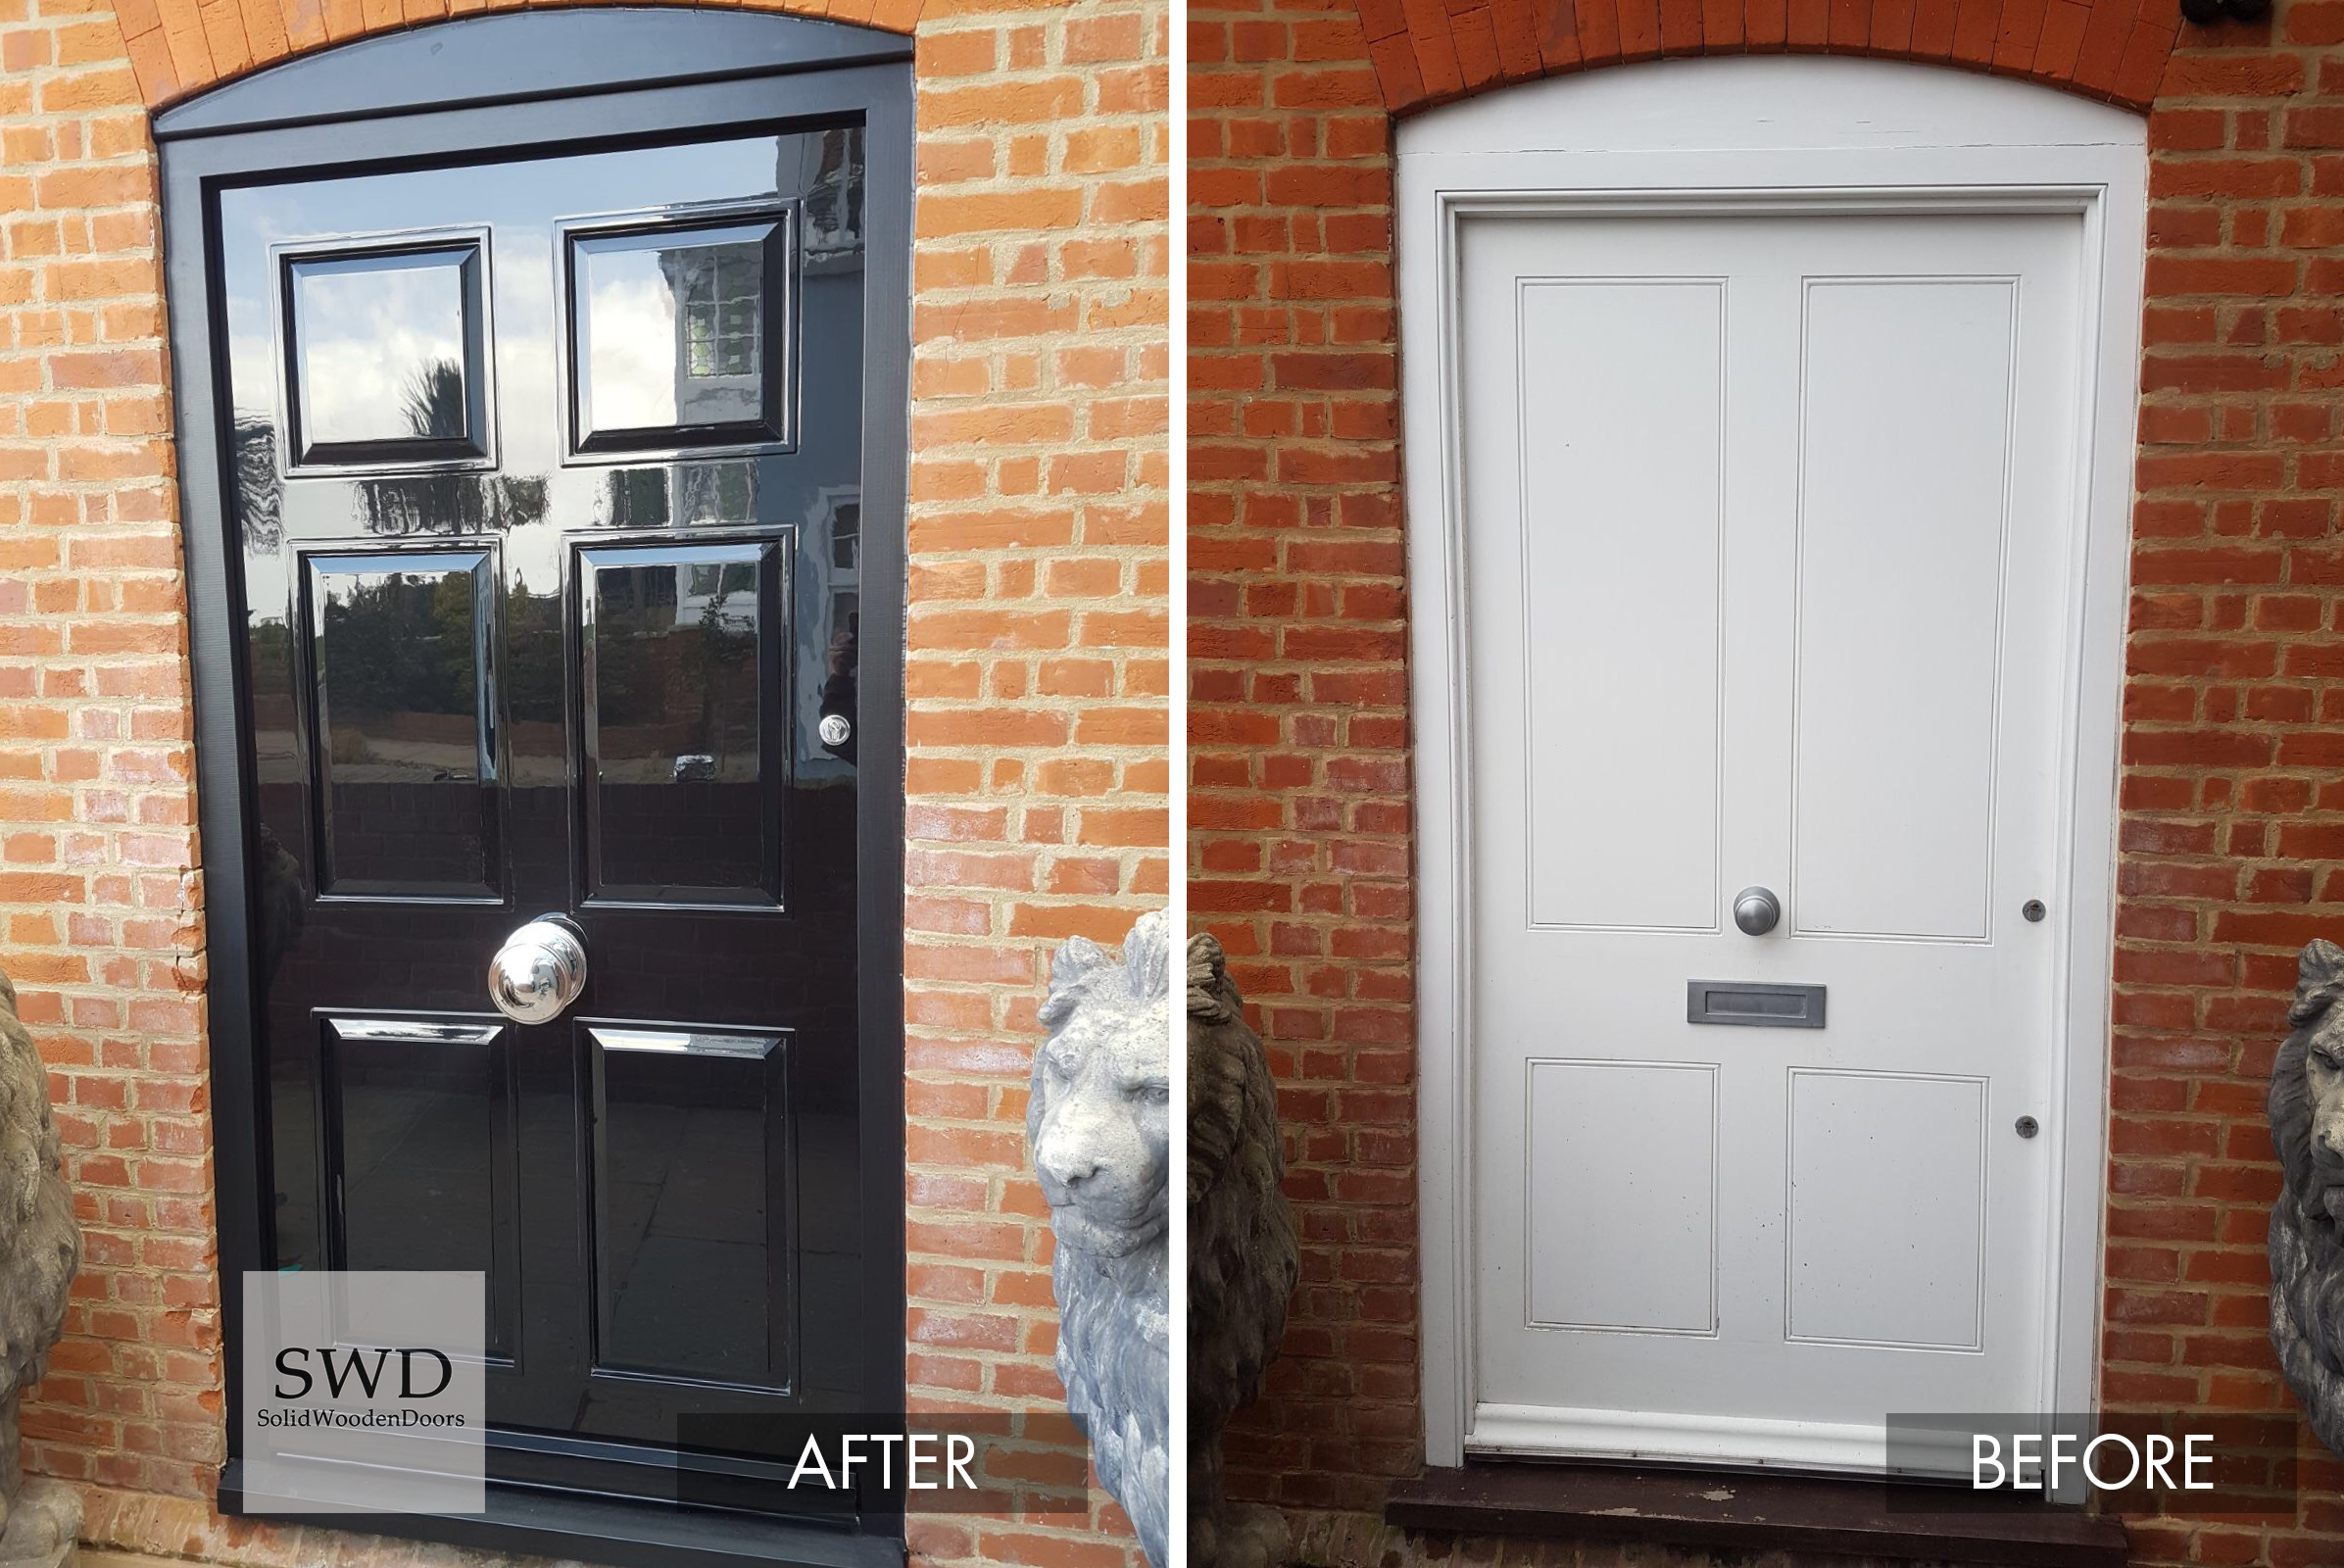 Swd Joinery Created This High Gloss Black 6 Panel Front Door In Our In House Workshop Our Client Wanted A Signif Exterior Front Doors Wooden Doors Panel Doors